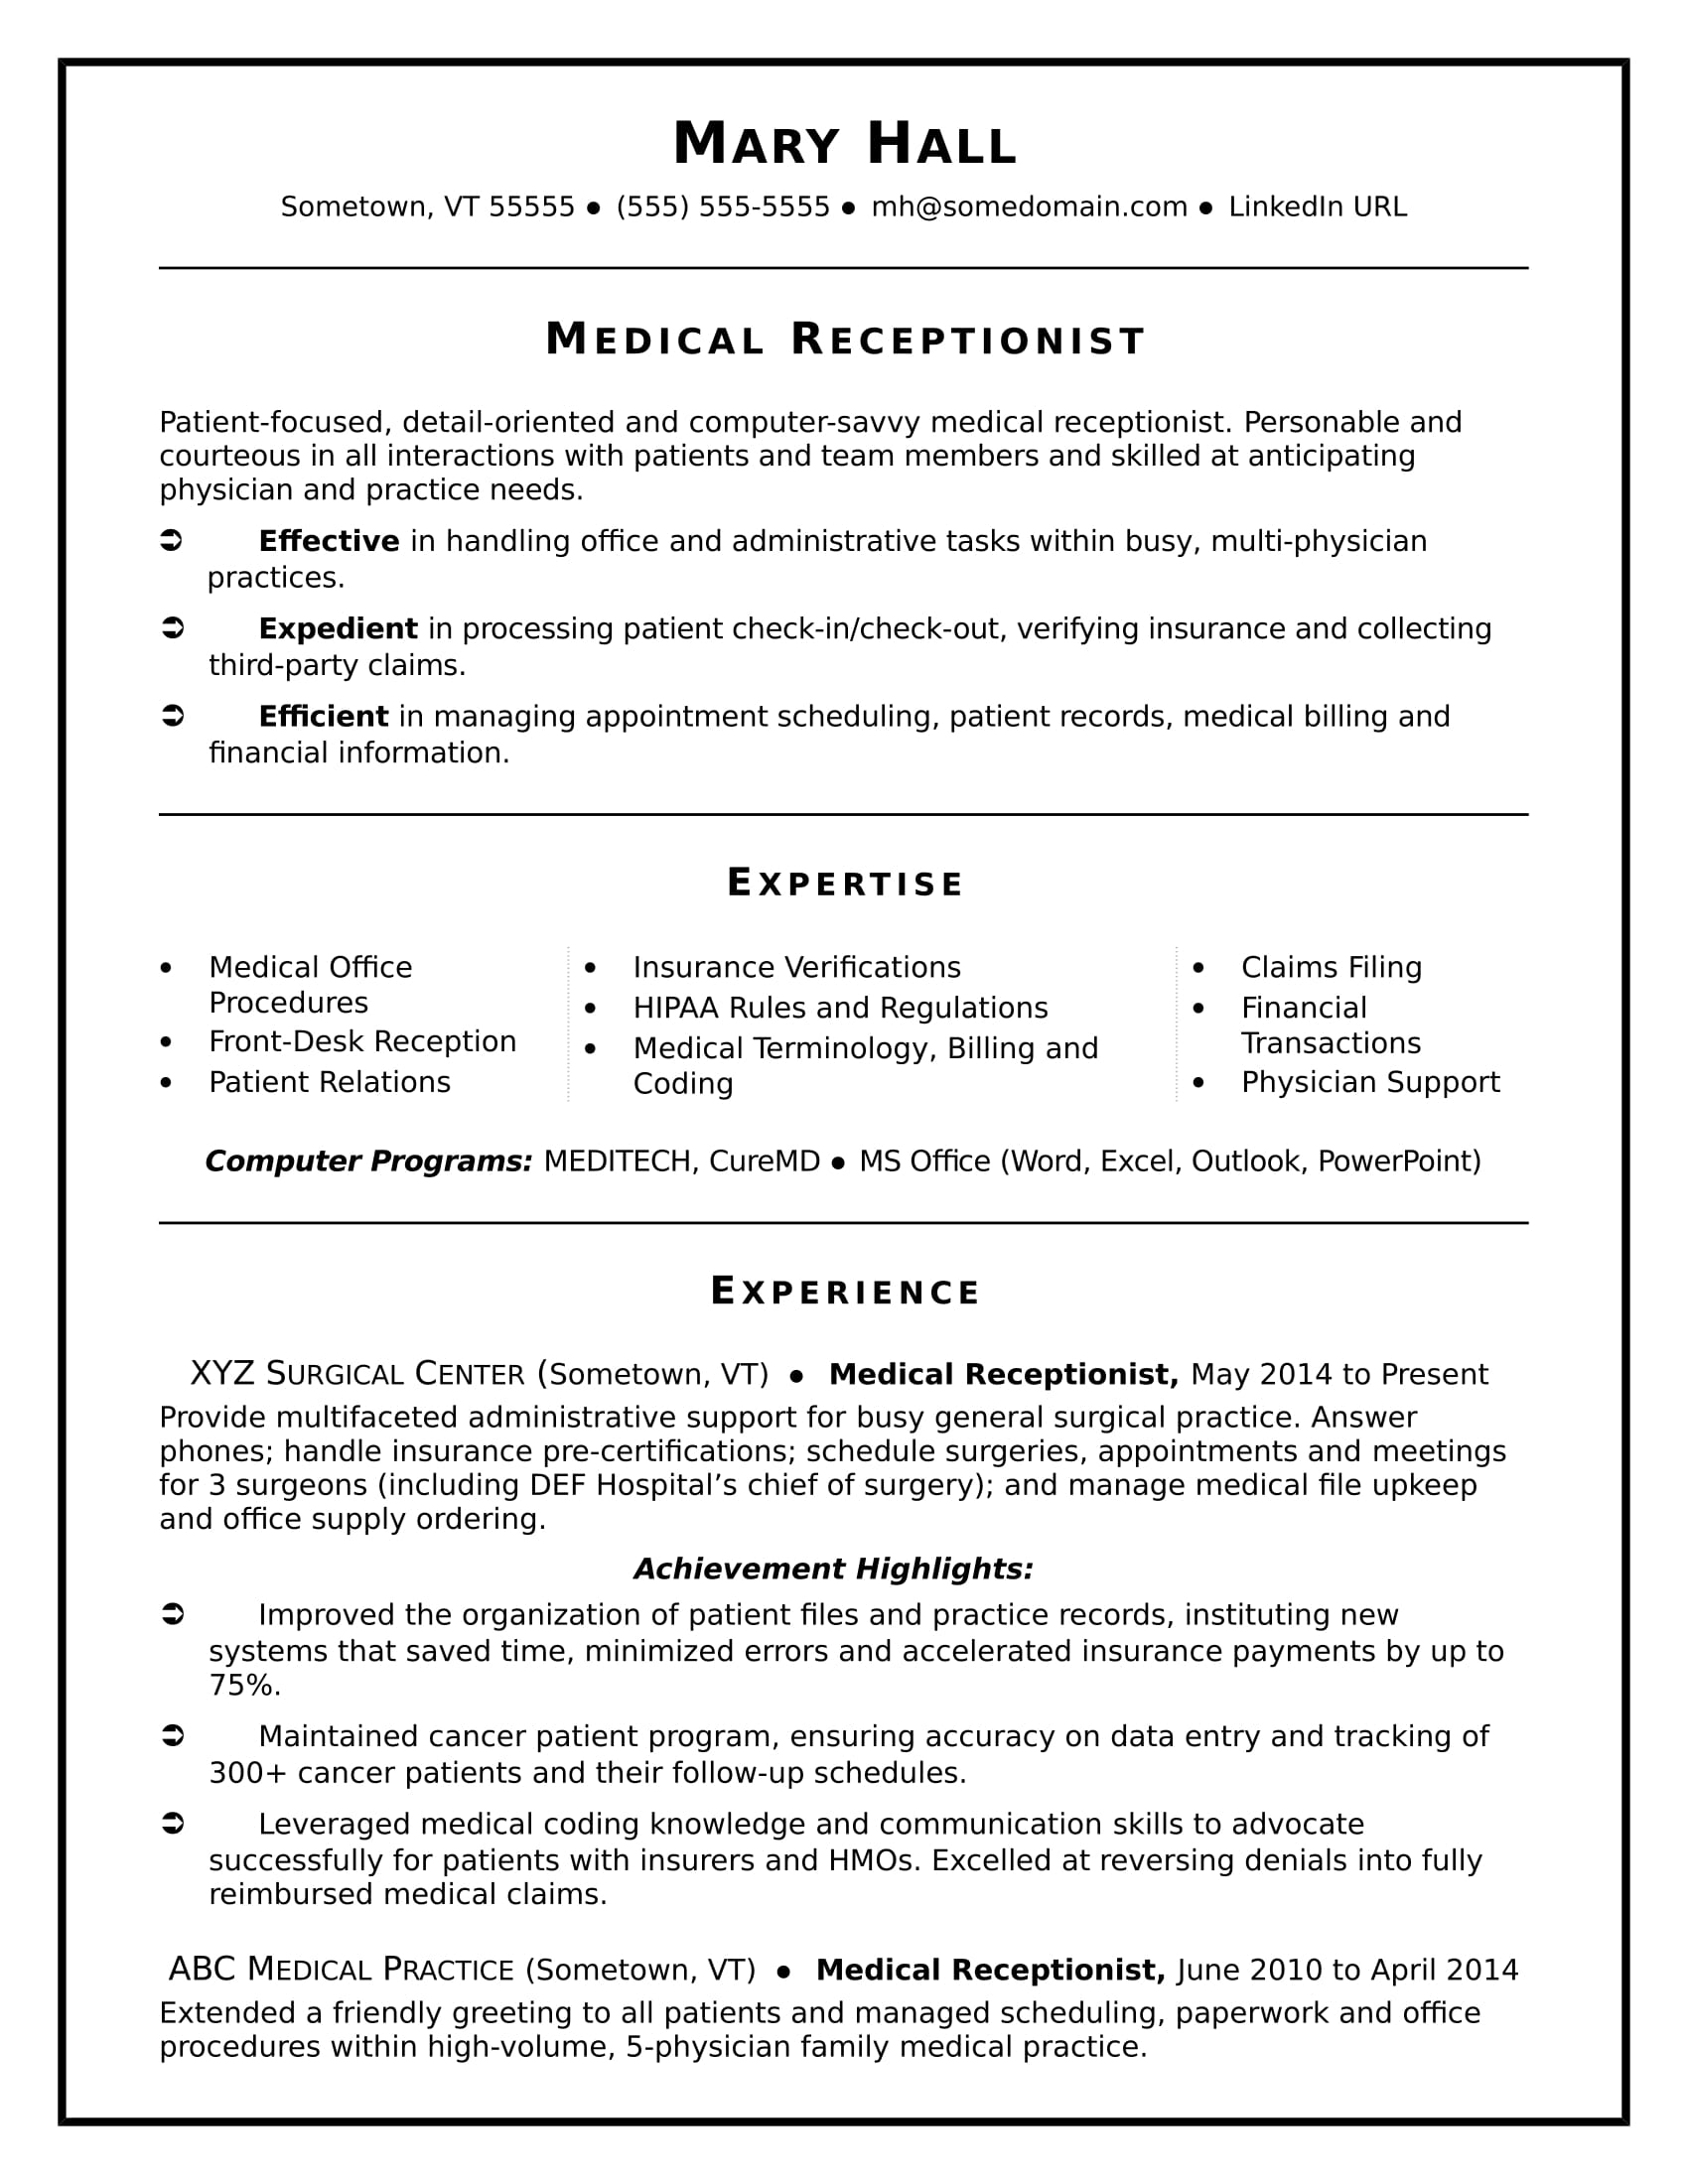 Medical Receptionist Resume Sample Monster  Medical Receptionist Resume Sample